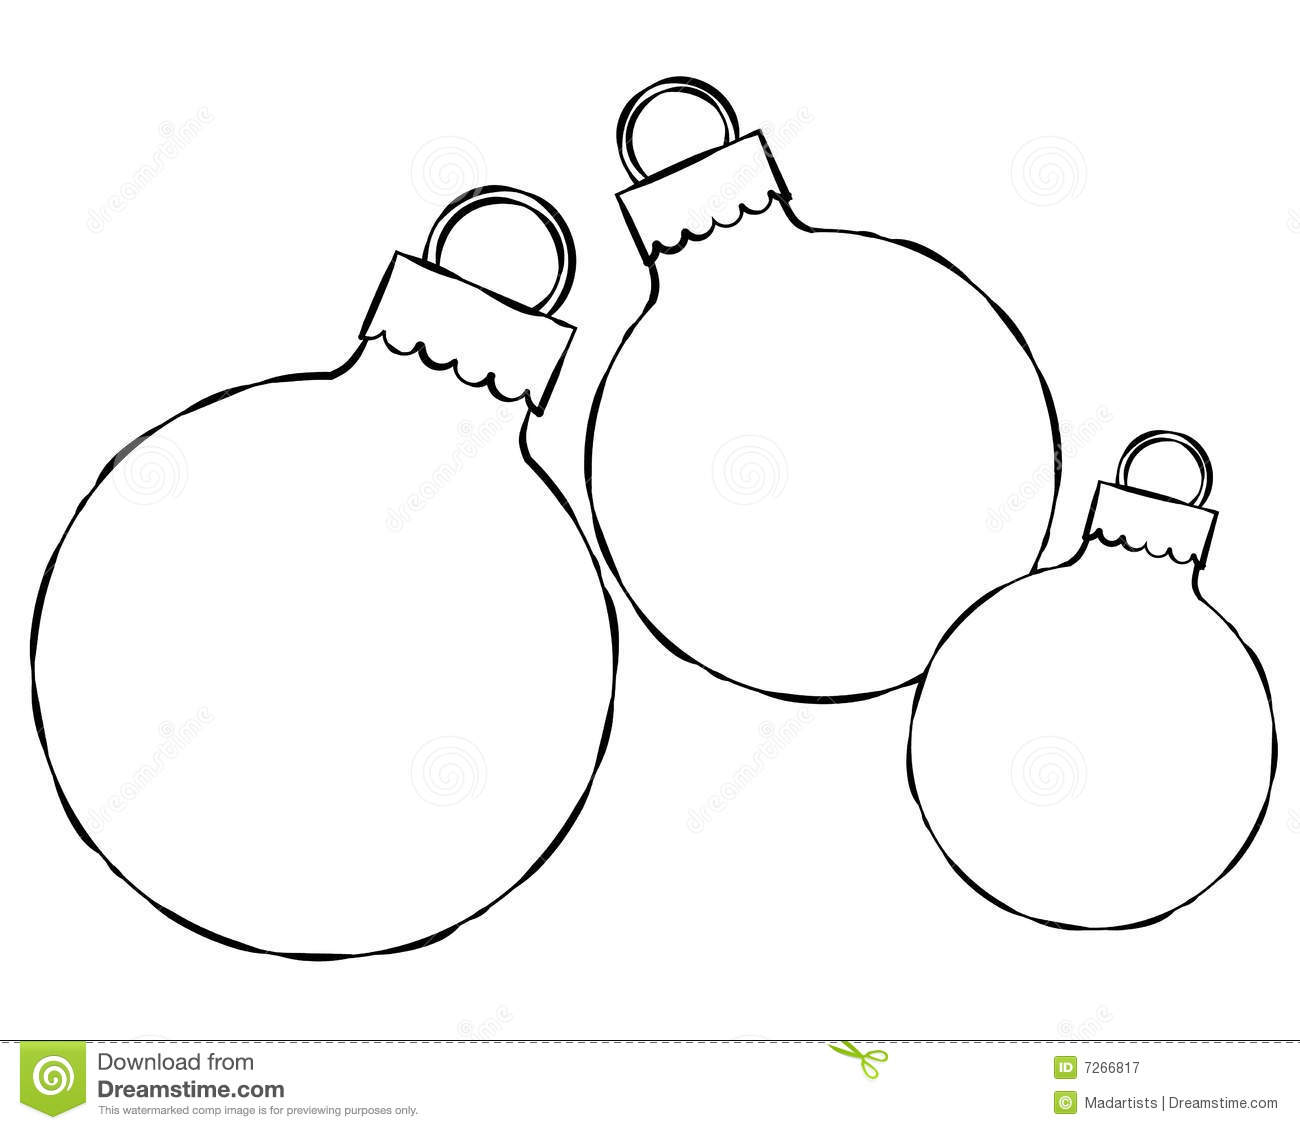 Christmas Ornament Line Art Royalty Free Stock Photography.